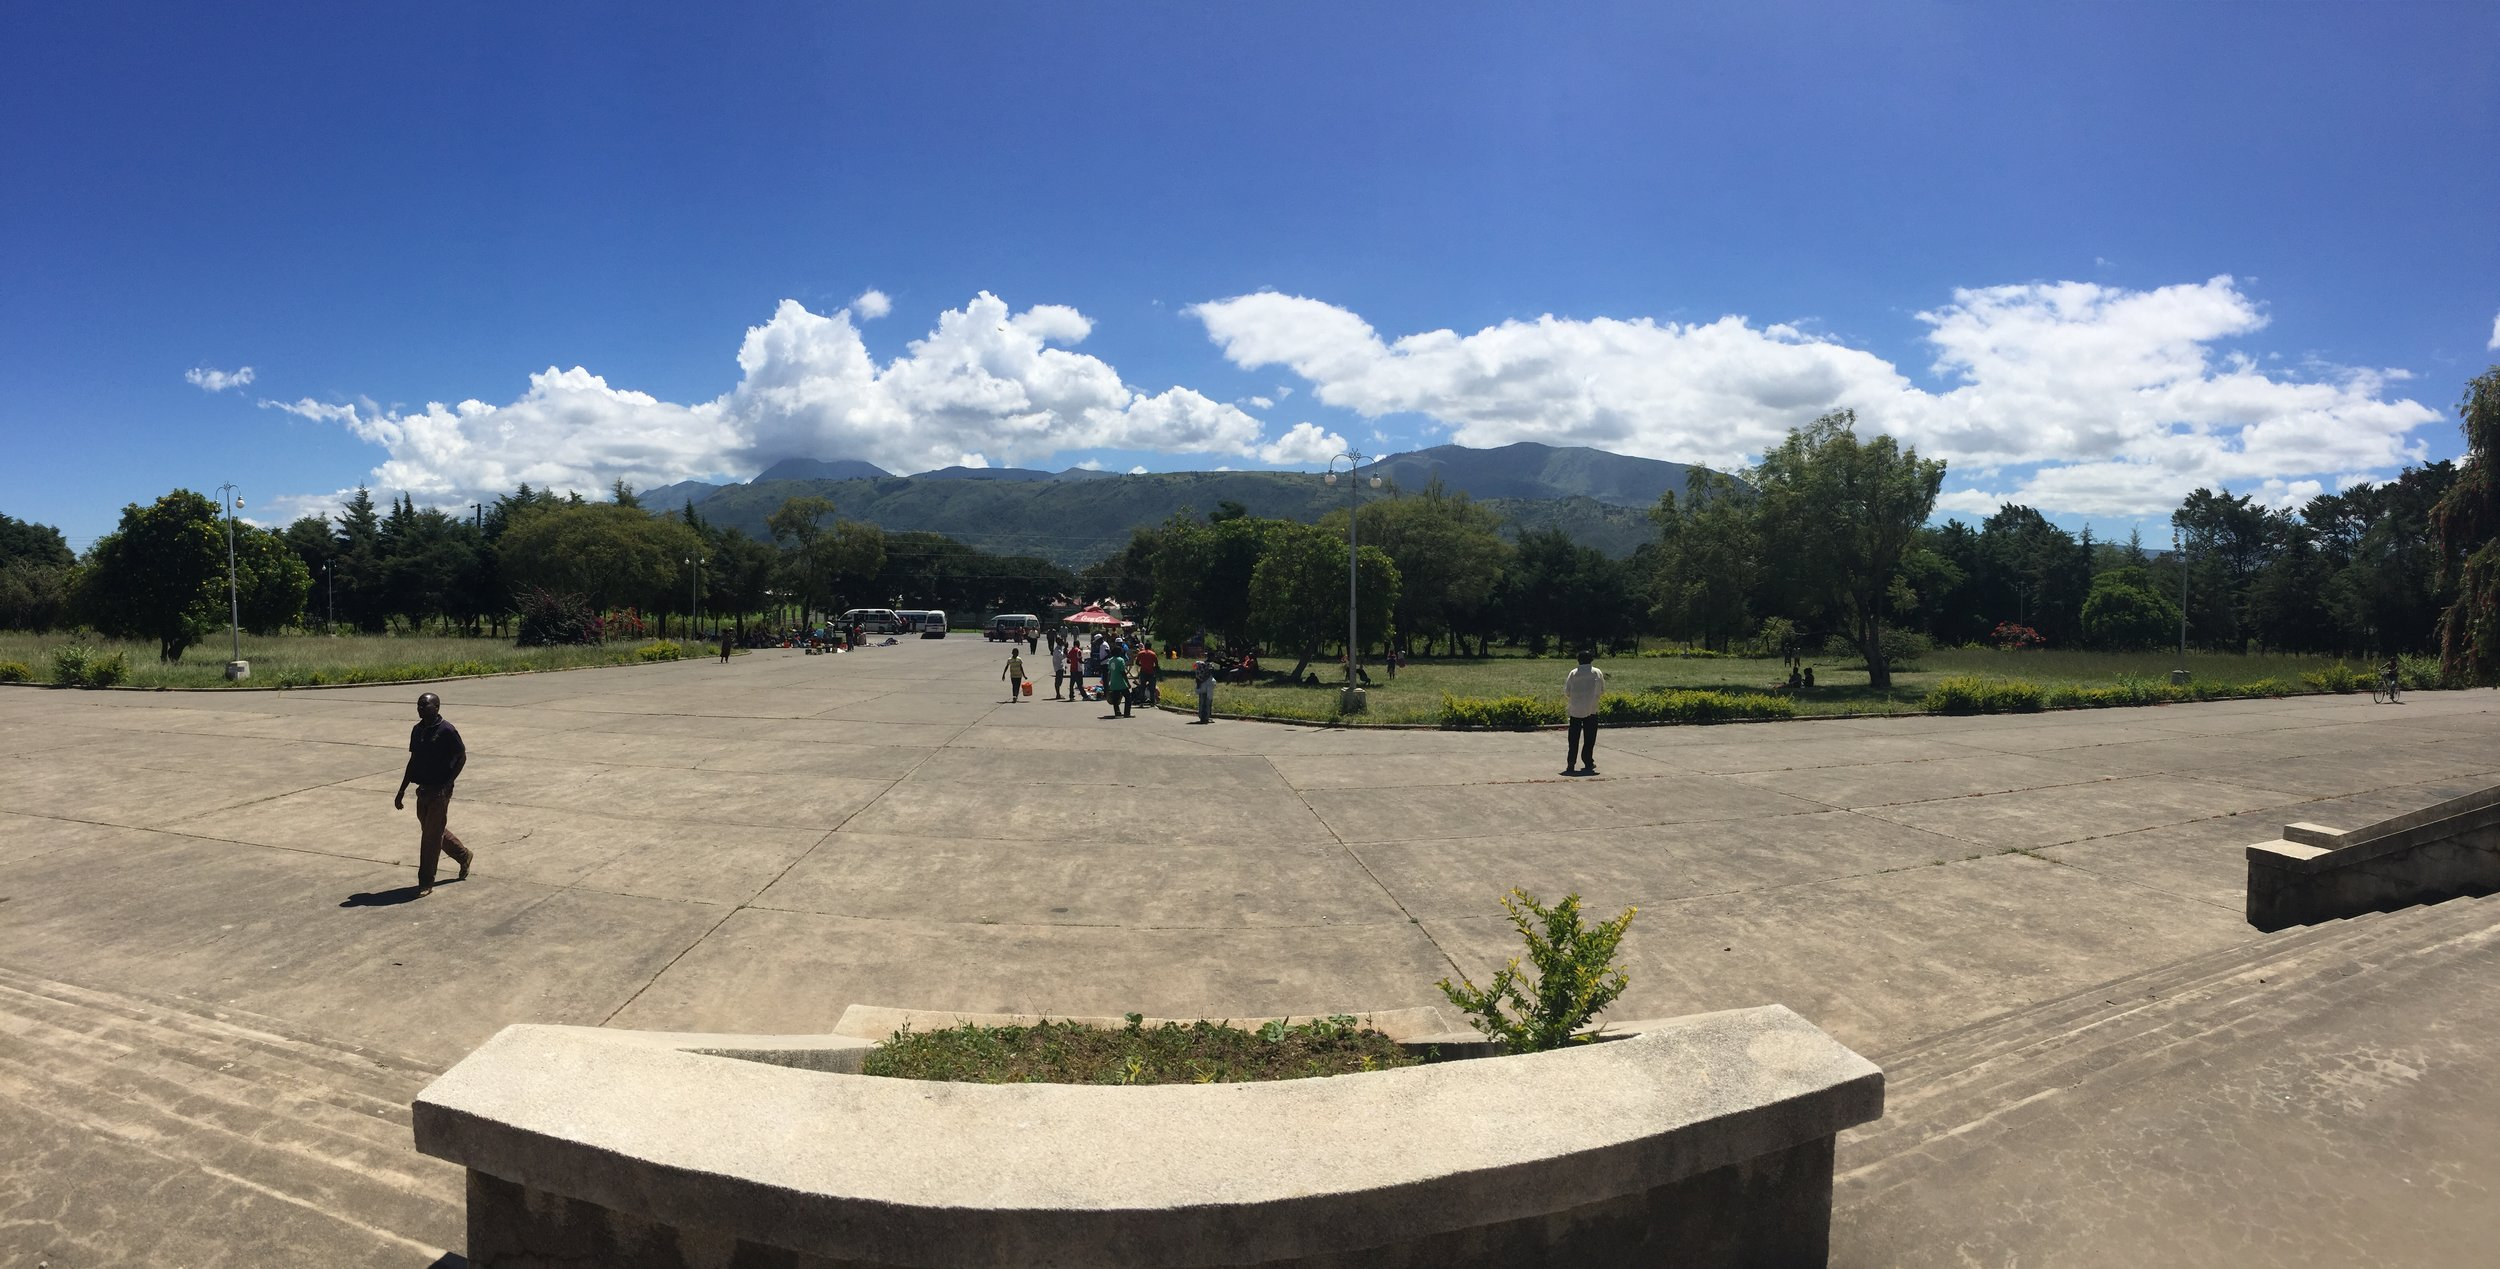 The view from the front of the spartanly-designed Mbeya railway station along the Tazara. The Chinese built Tanzania's rail stations in the large, unadorned fashion of communist engineering.